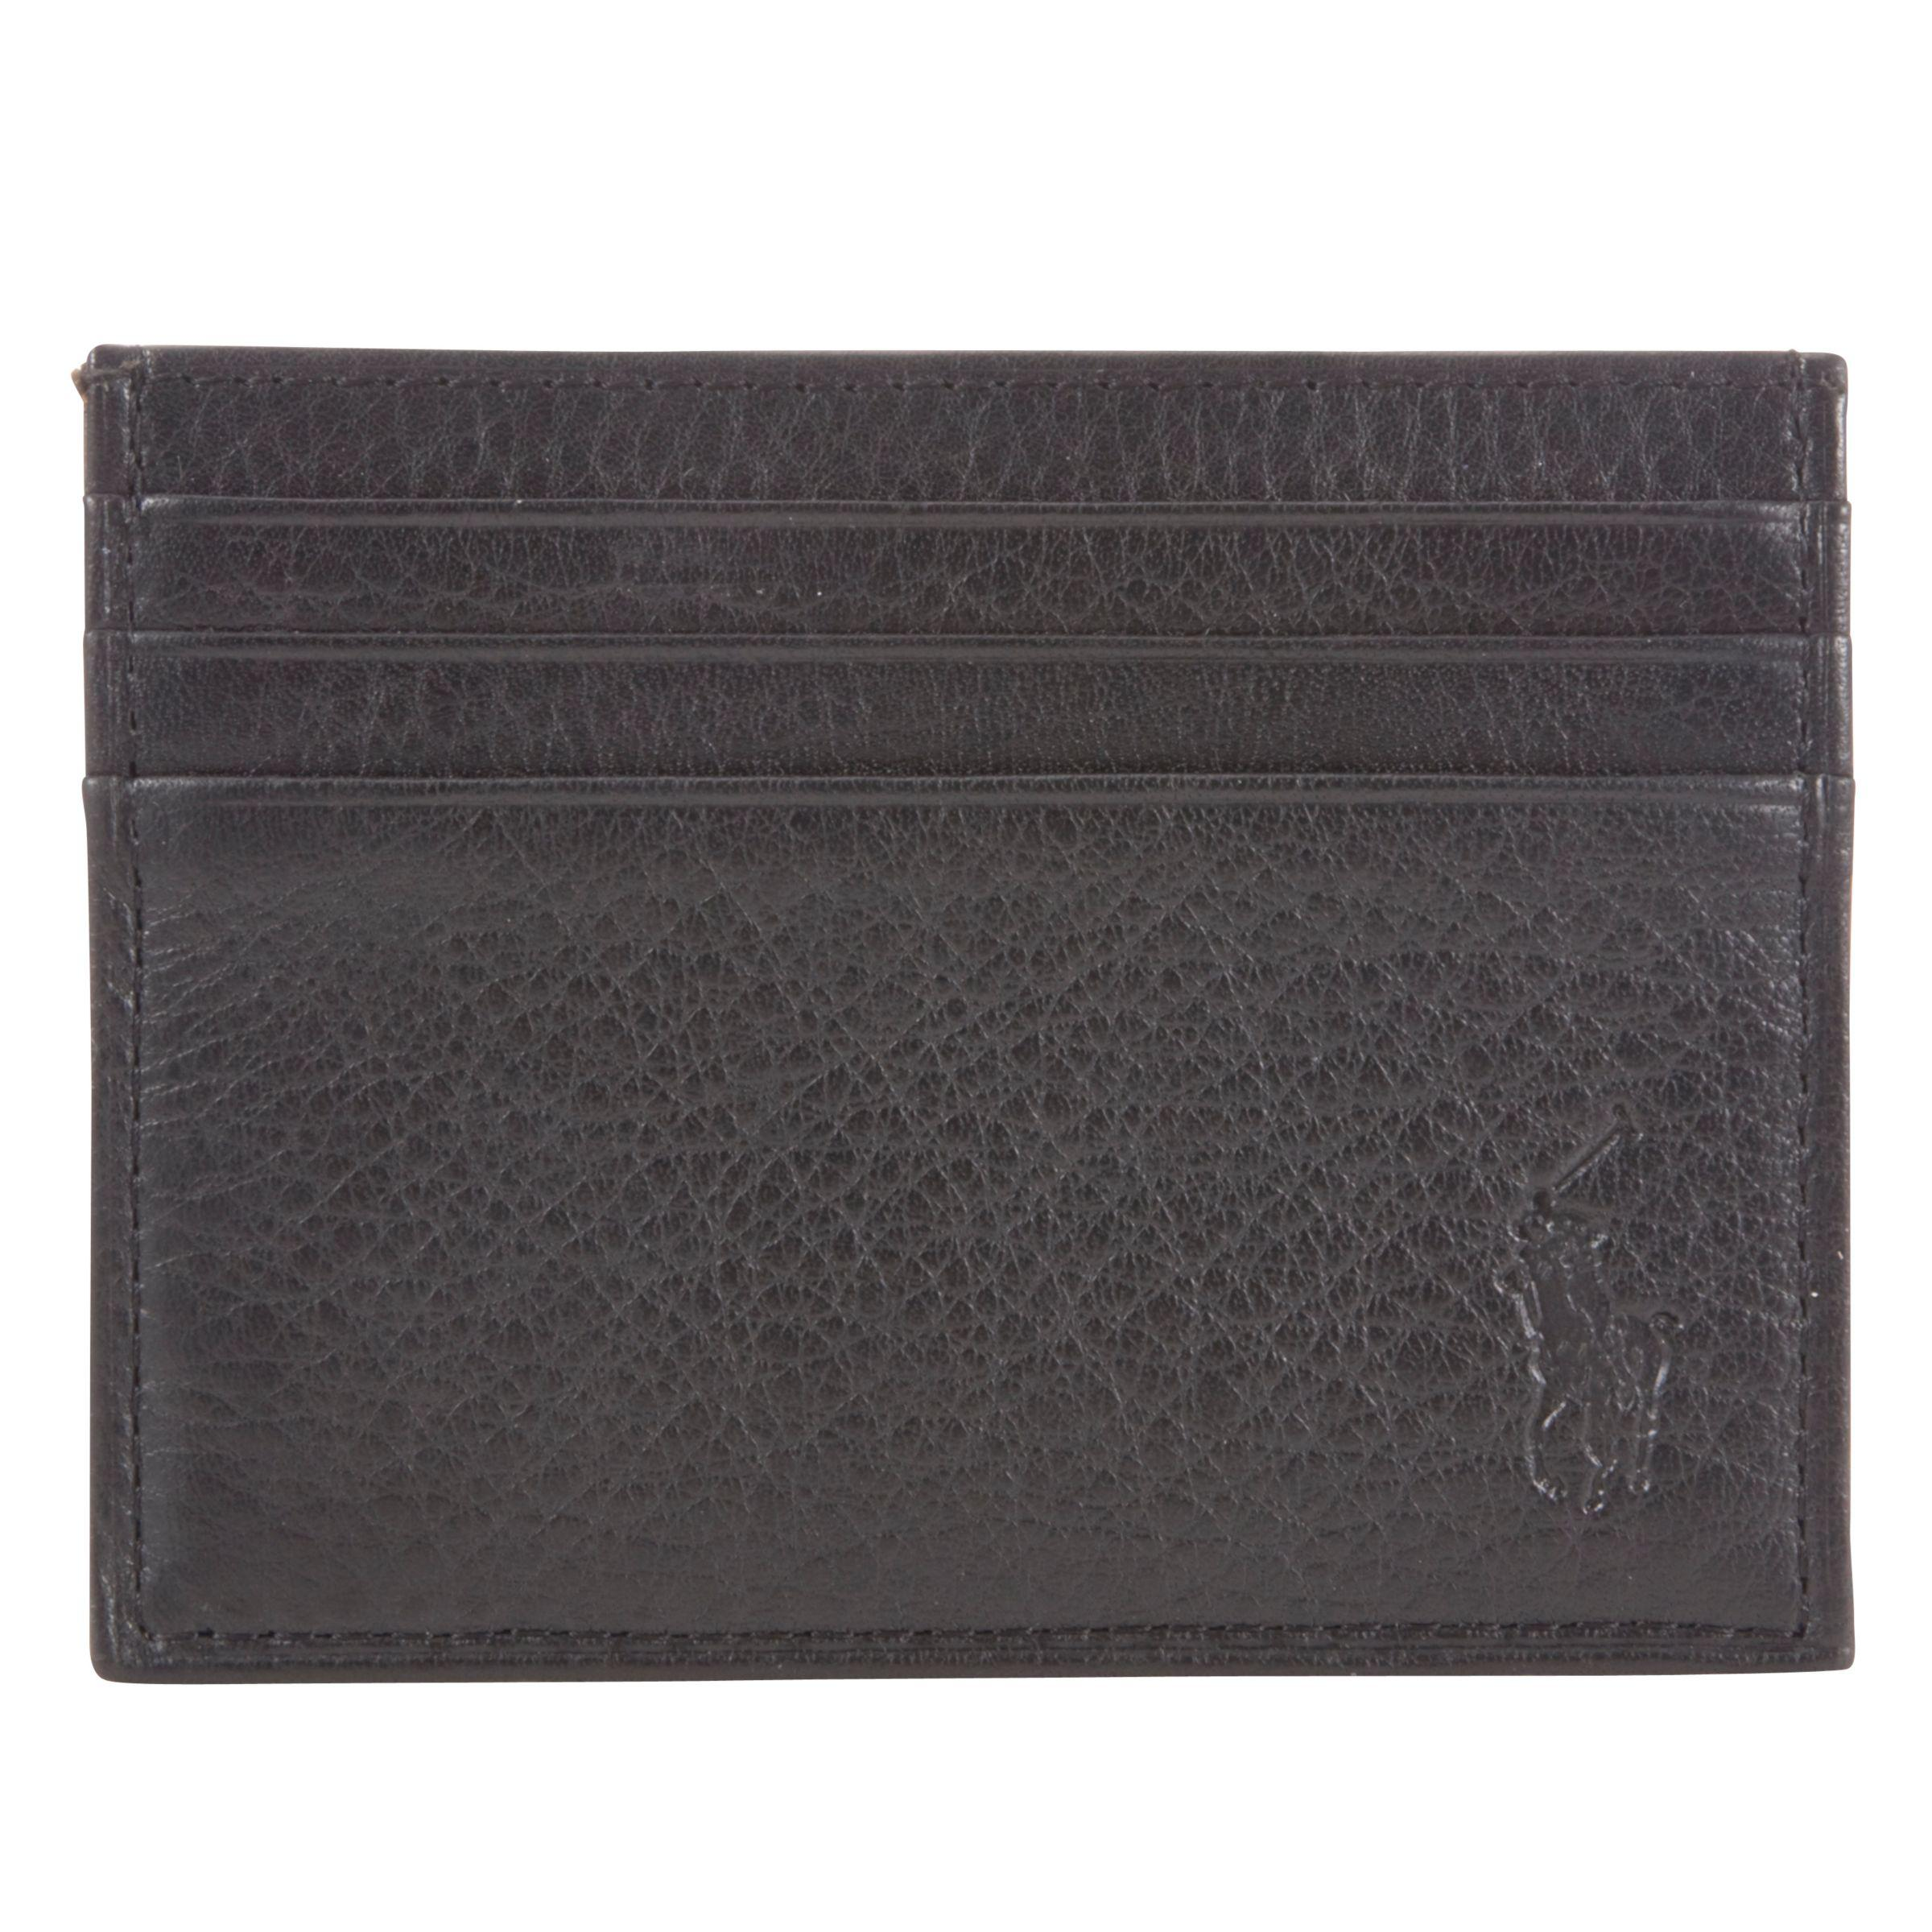 b774fafadd Ralph Lauren Polo Pebble Leather Card Holder in Black for Men - Lyst